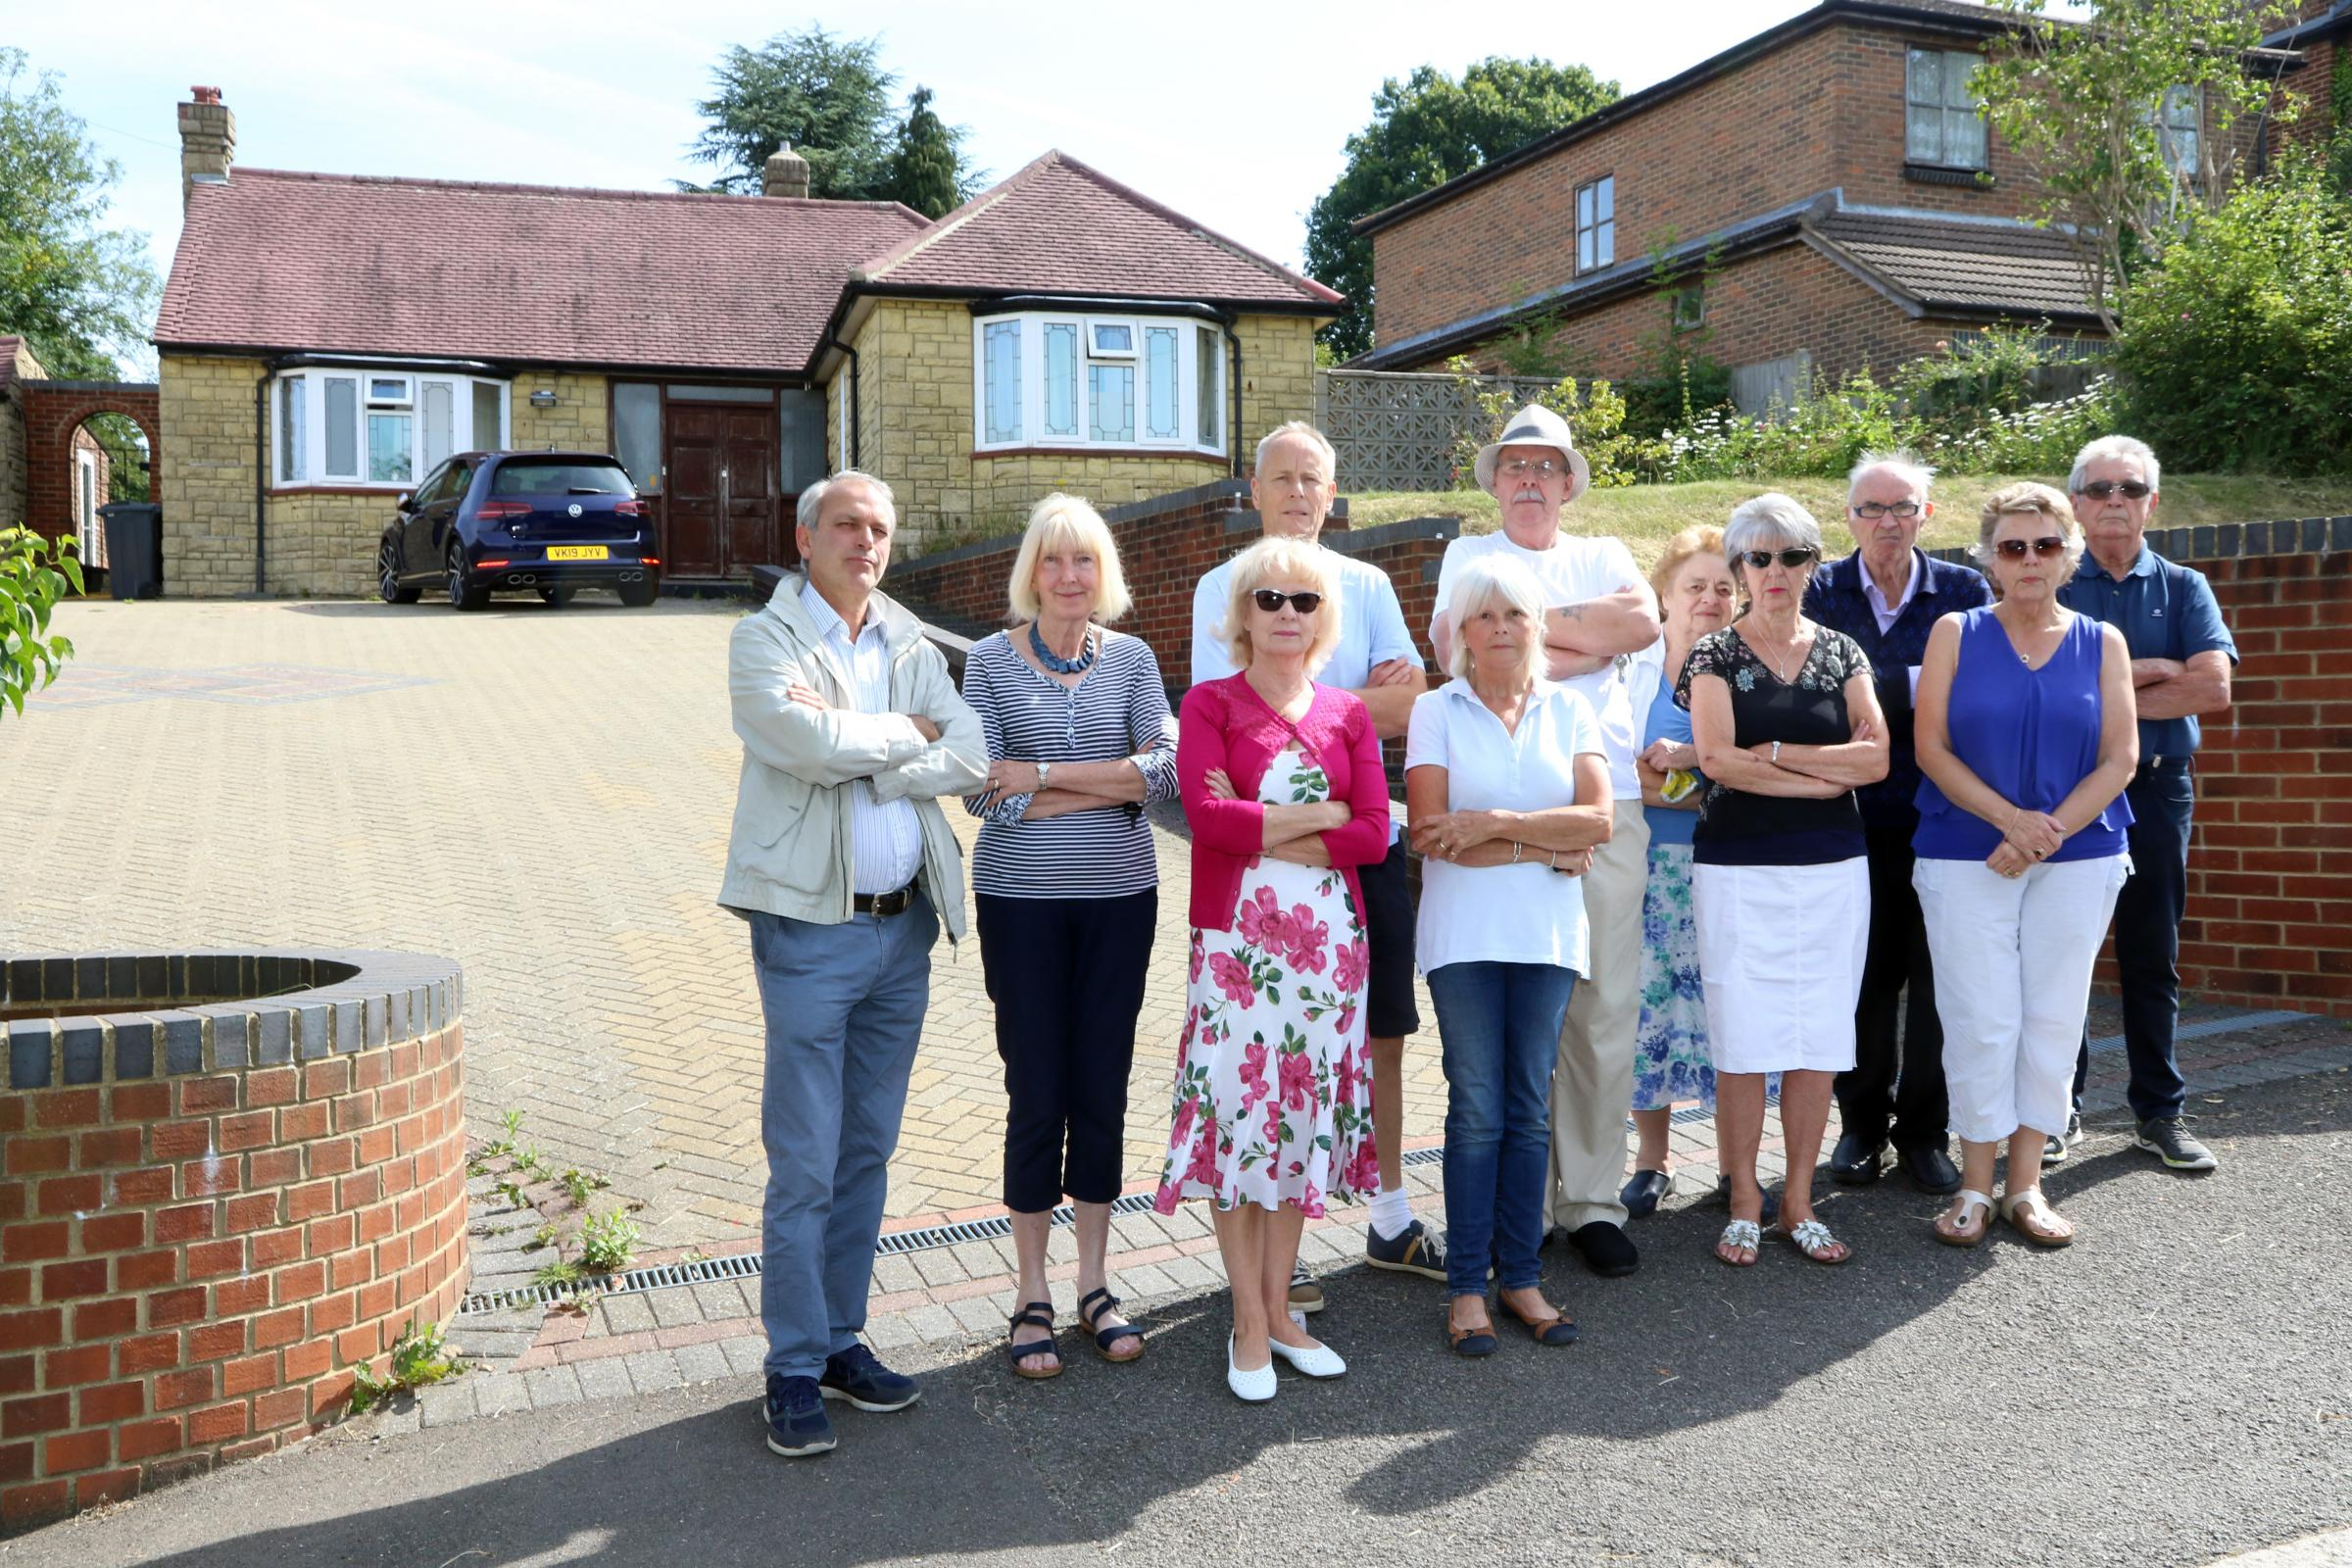 Hundreds sign petition opposing plans to turn Coulsdon bungalow into flats